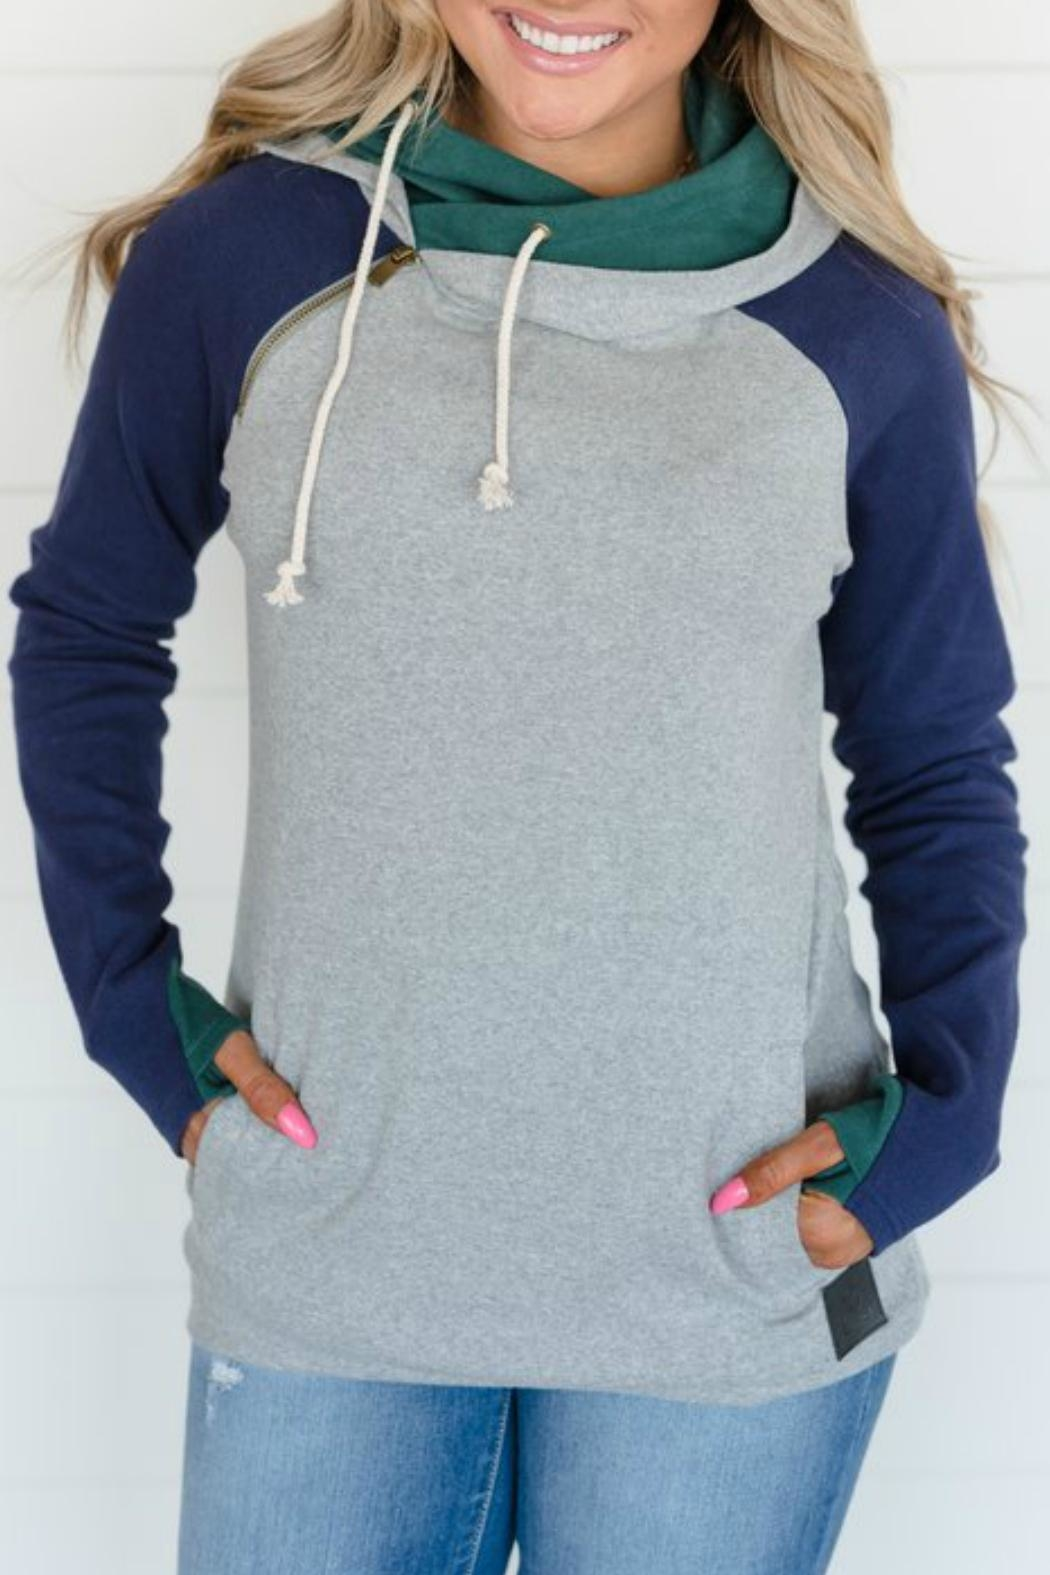 Ampersand Ivy League Double-Hoodie - Main Image